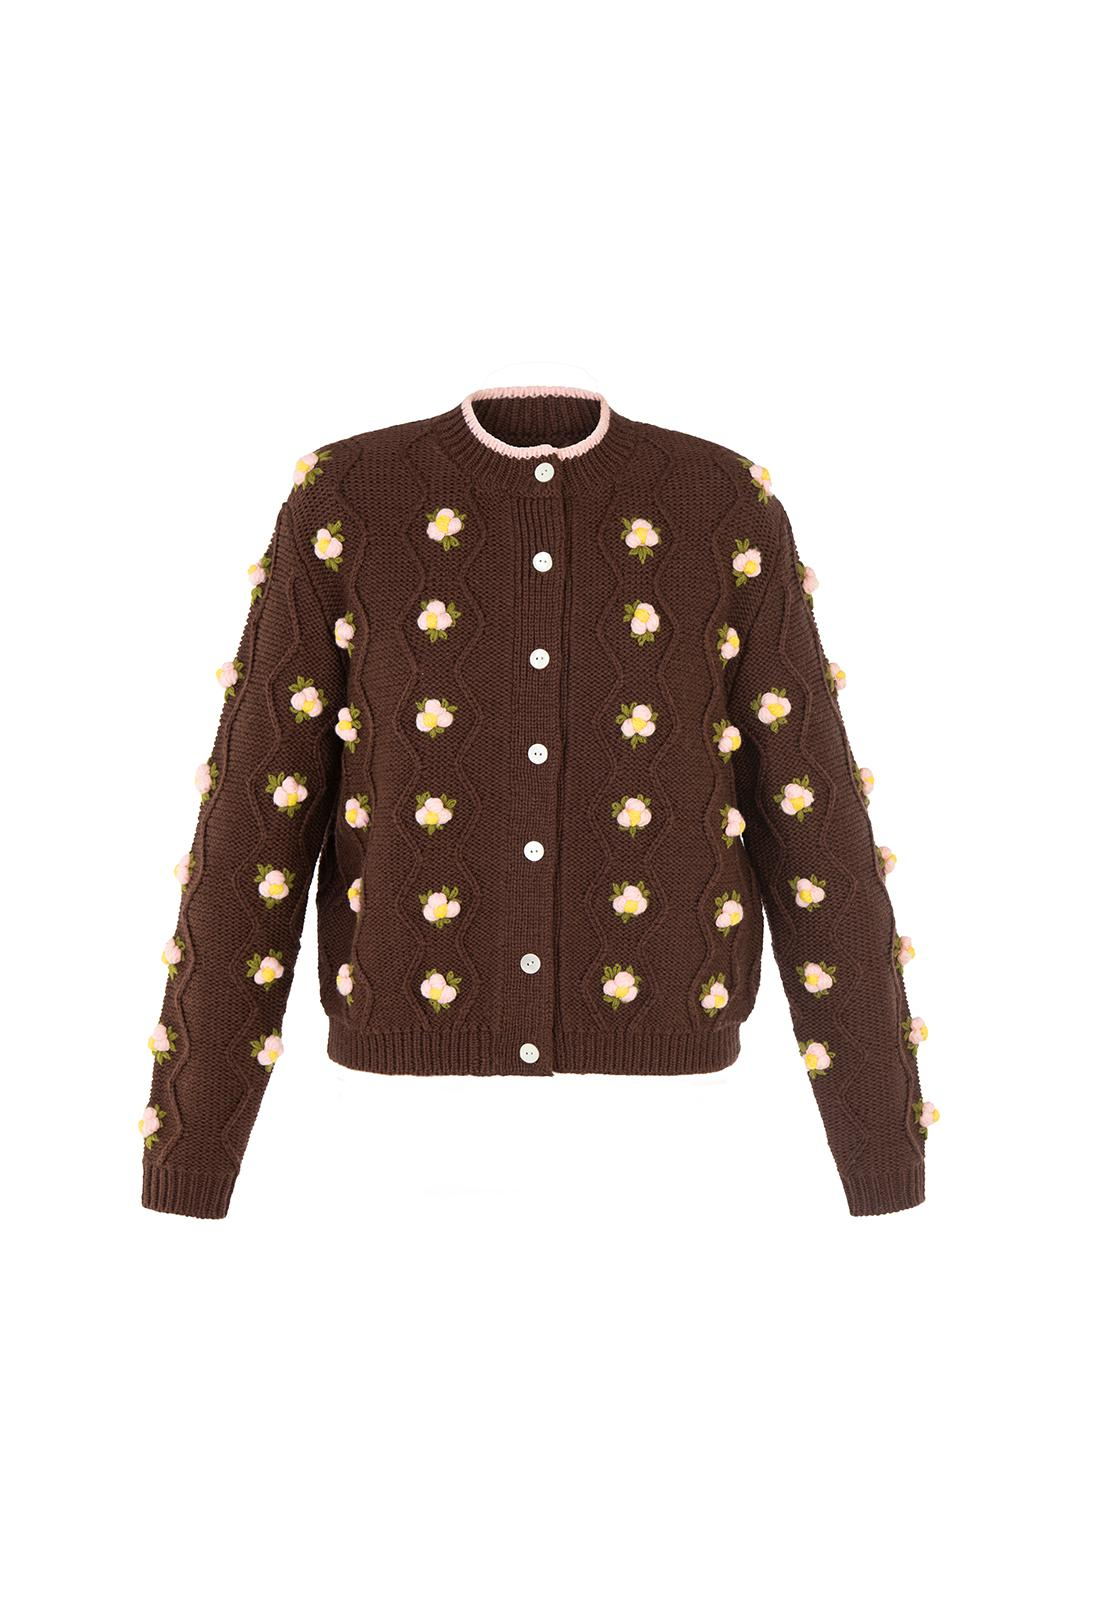 Chester Cardigan - Brown 5